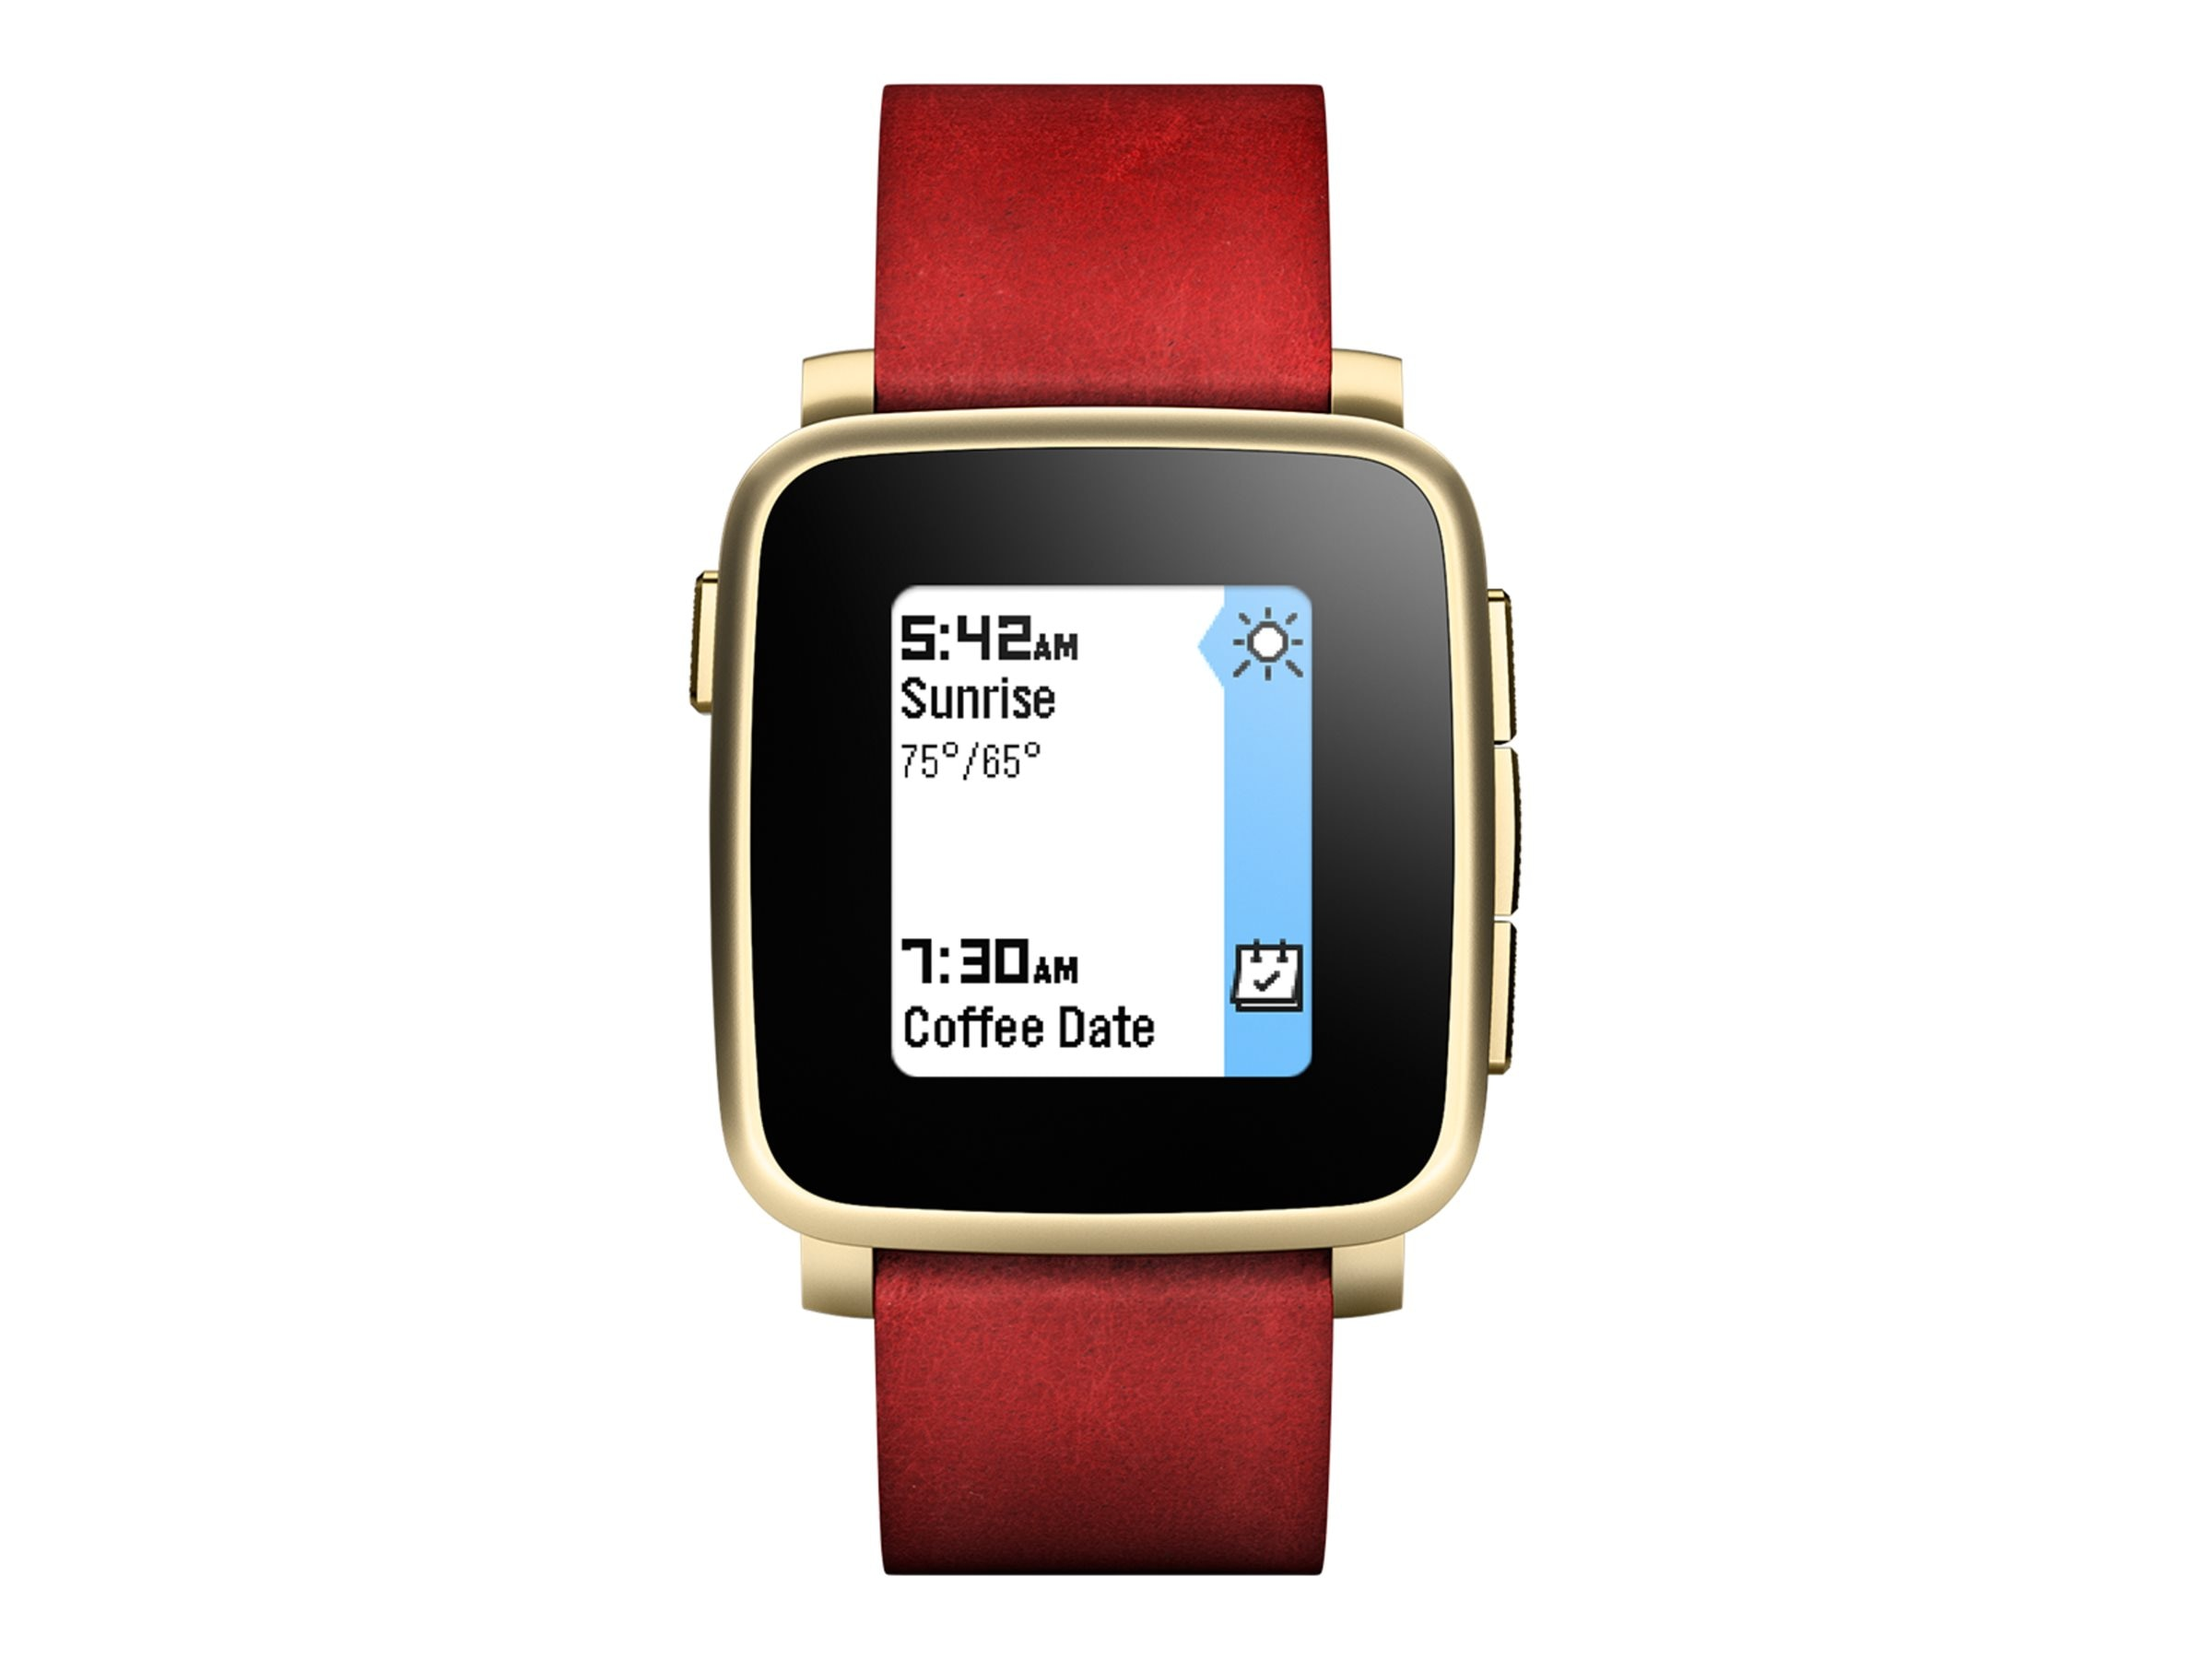 Pebble Time Steel Smartwatch, Gold with Metal Band, 511-00036